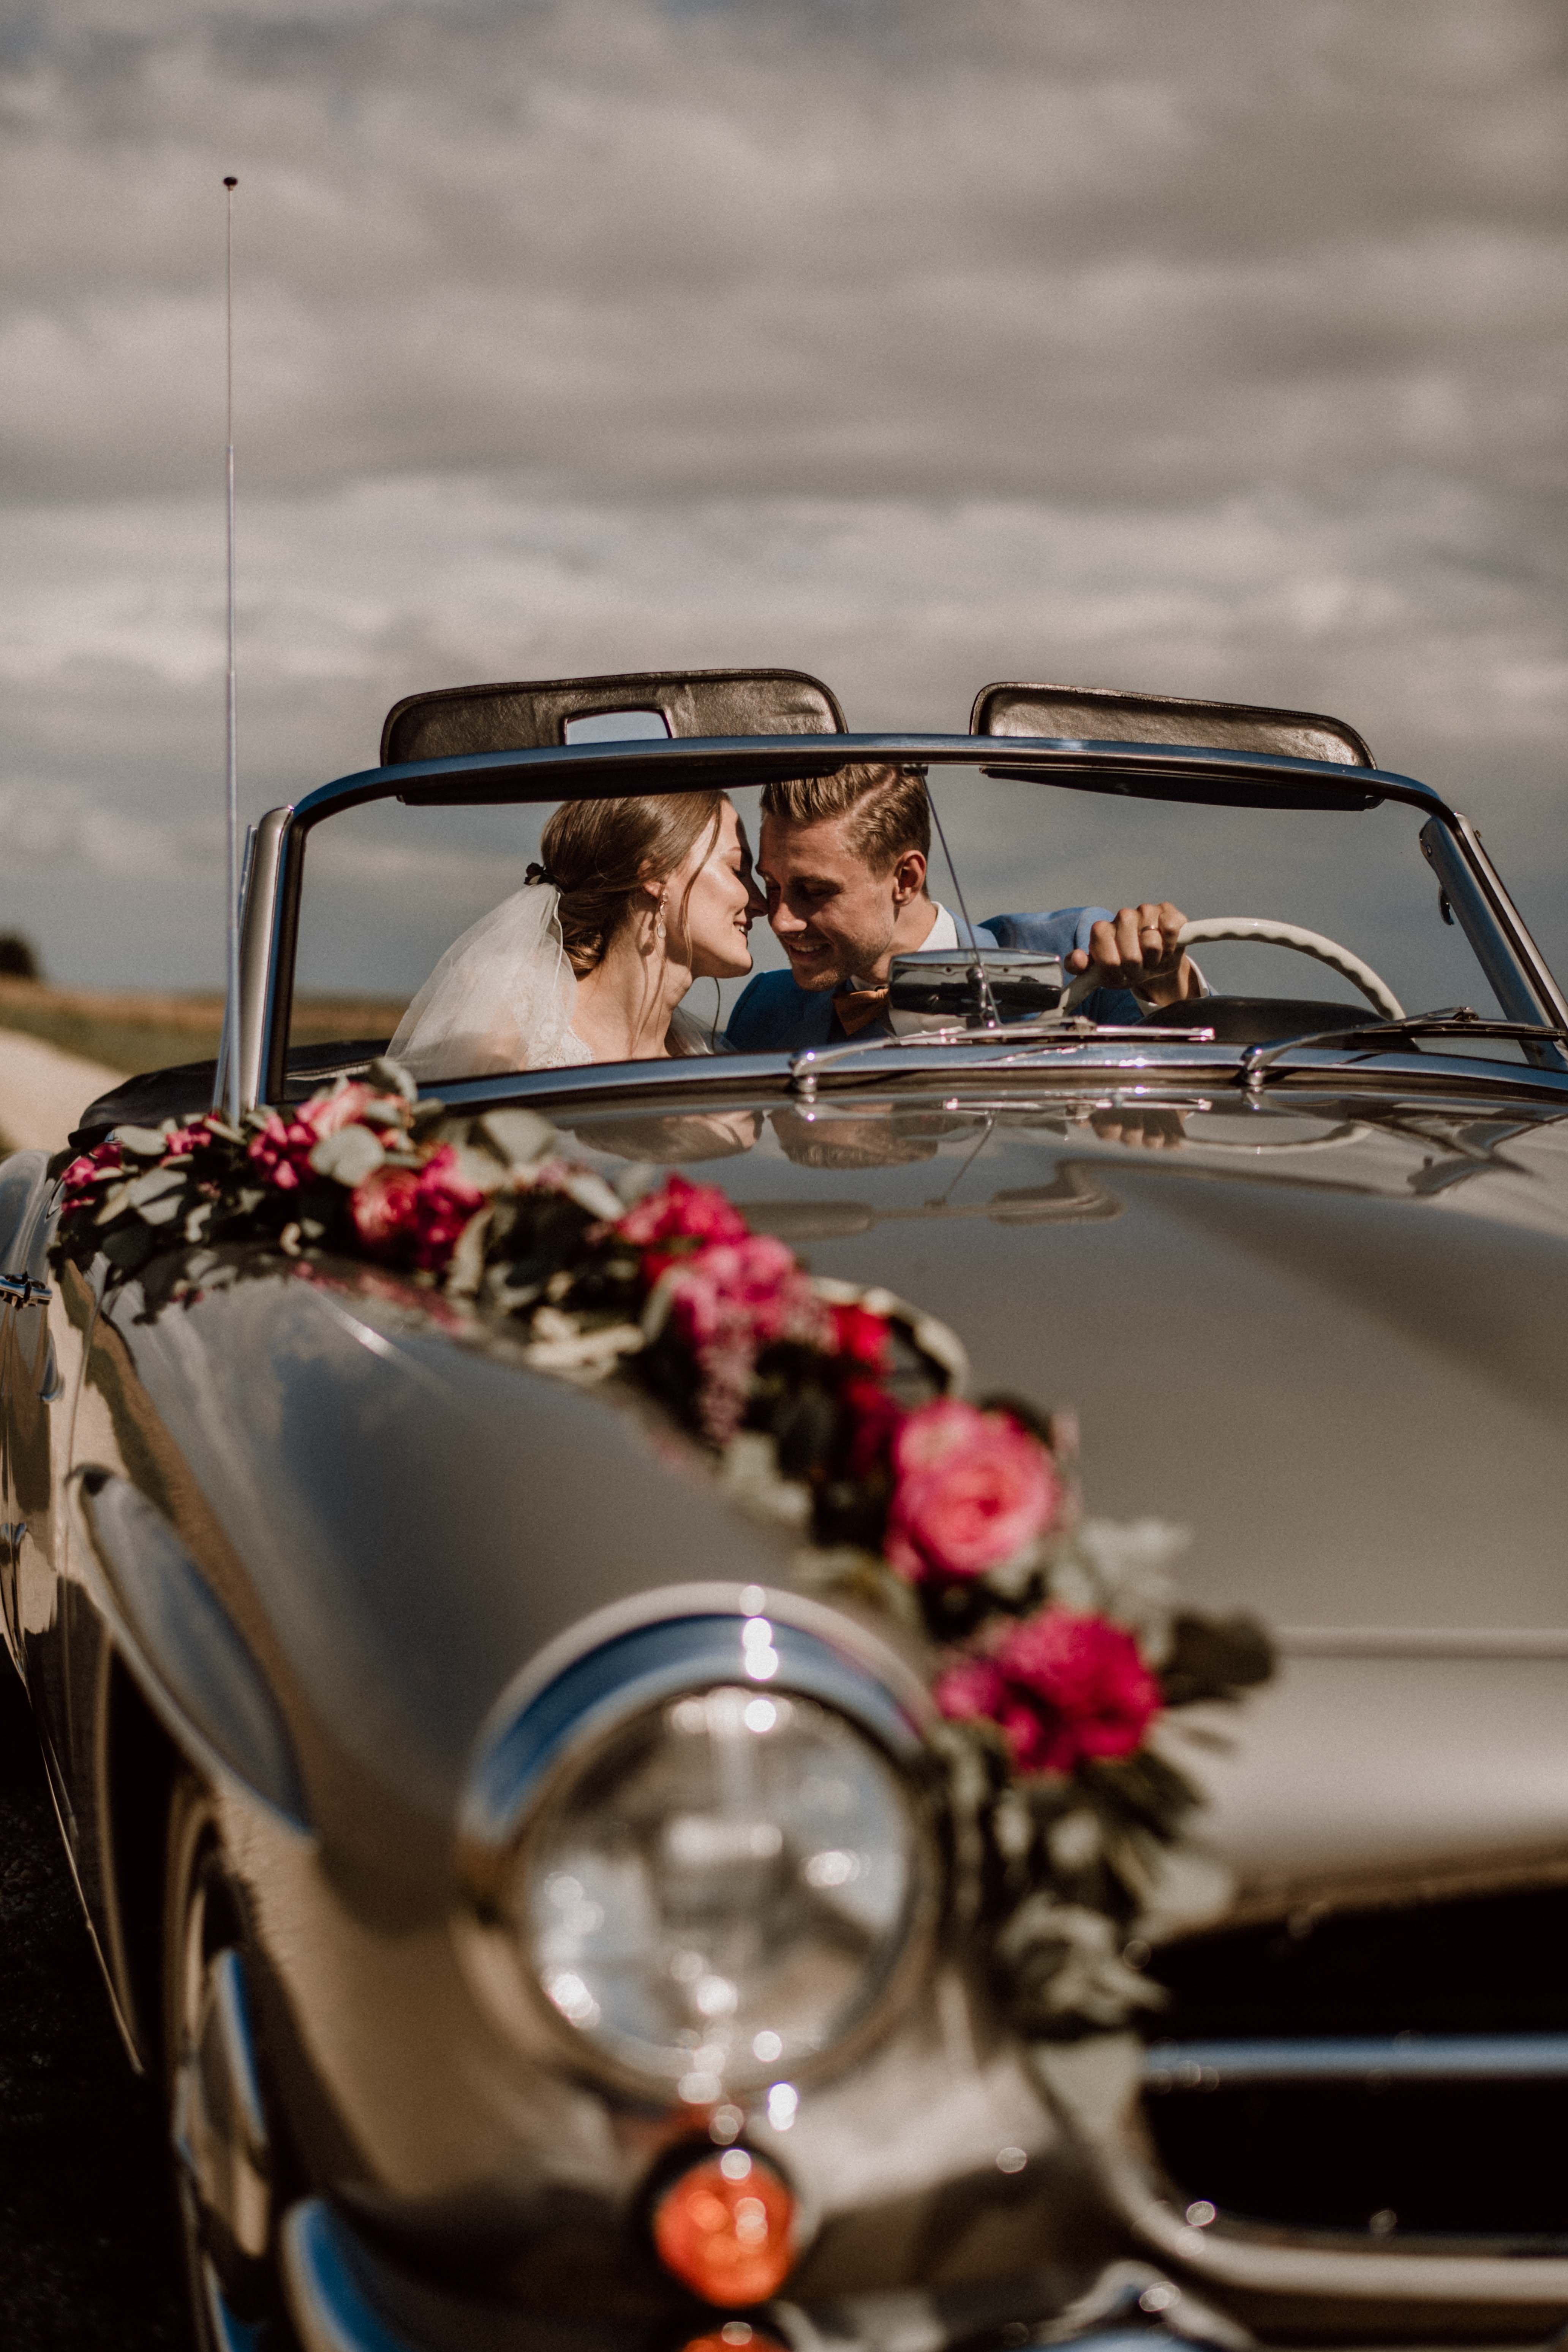 car couple sonja poehlmann photography couples muenchen bayern